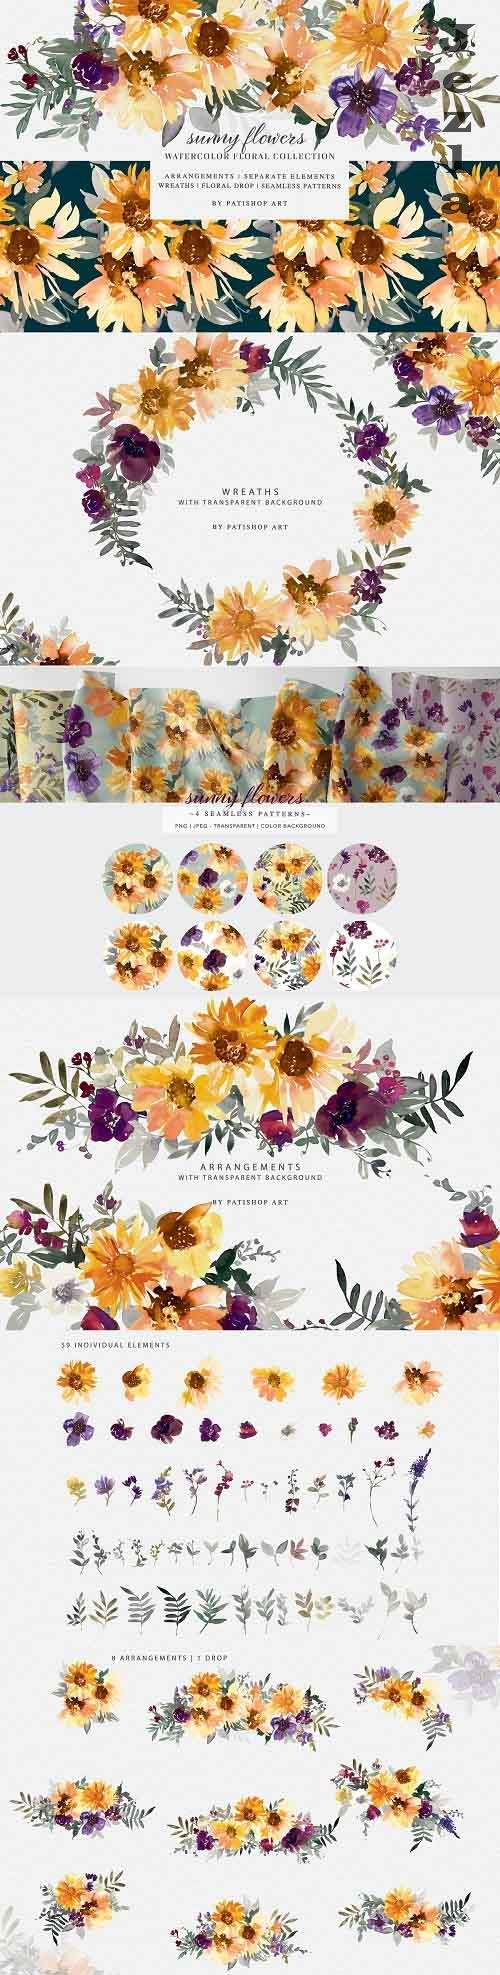 Watercolor Sunflower Clipart Set - 5158957